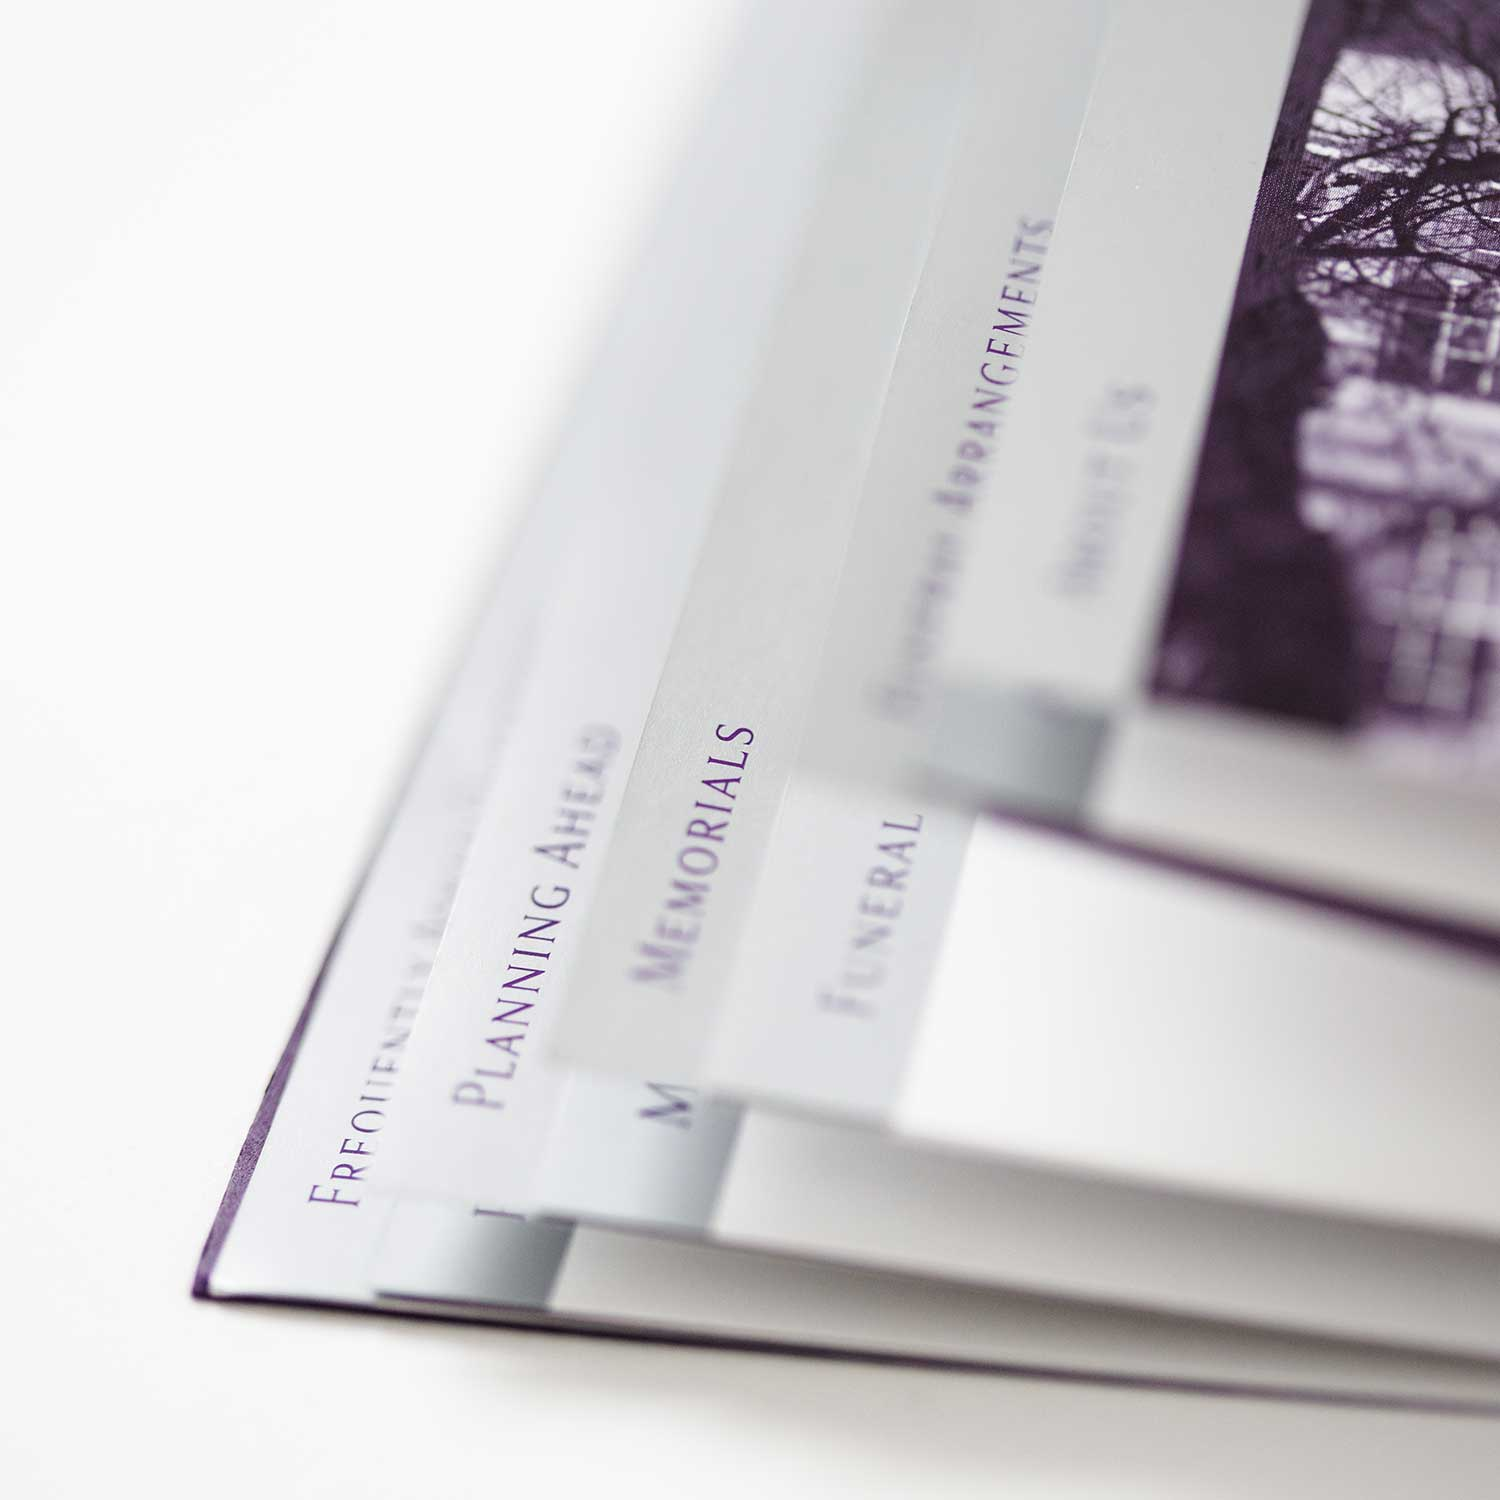 Brochure design example for funeral industry marketing